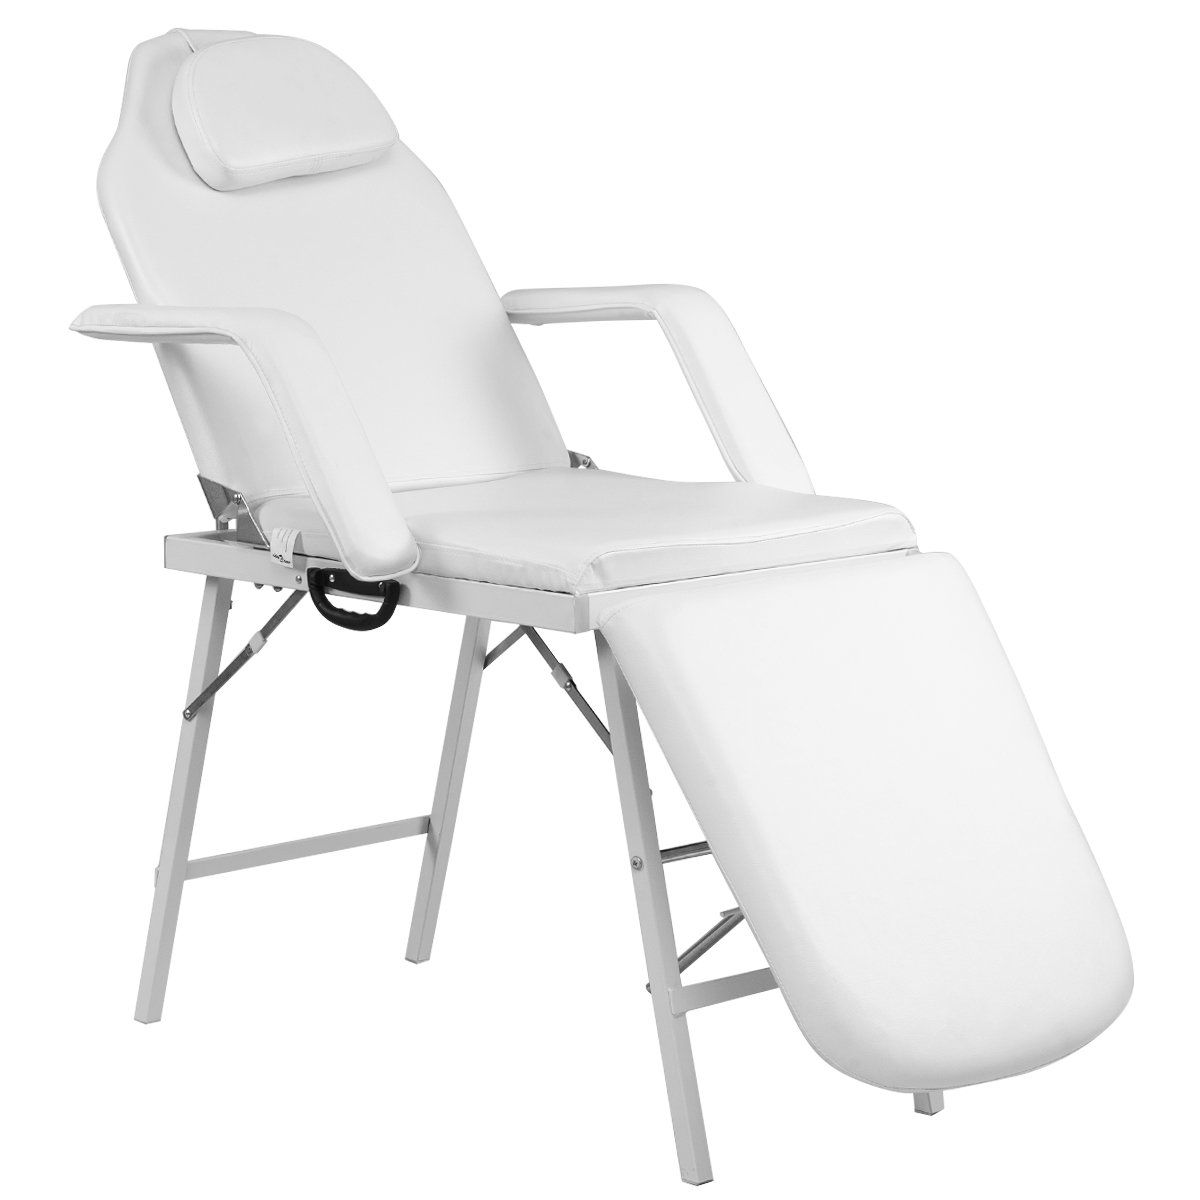 "Giantex 73"" Portable Tattoo Parlor Spa Salon Facial Bed Beauty Massage Table Chair White"